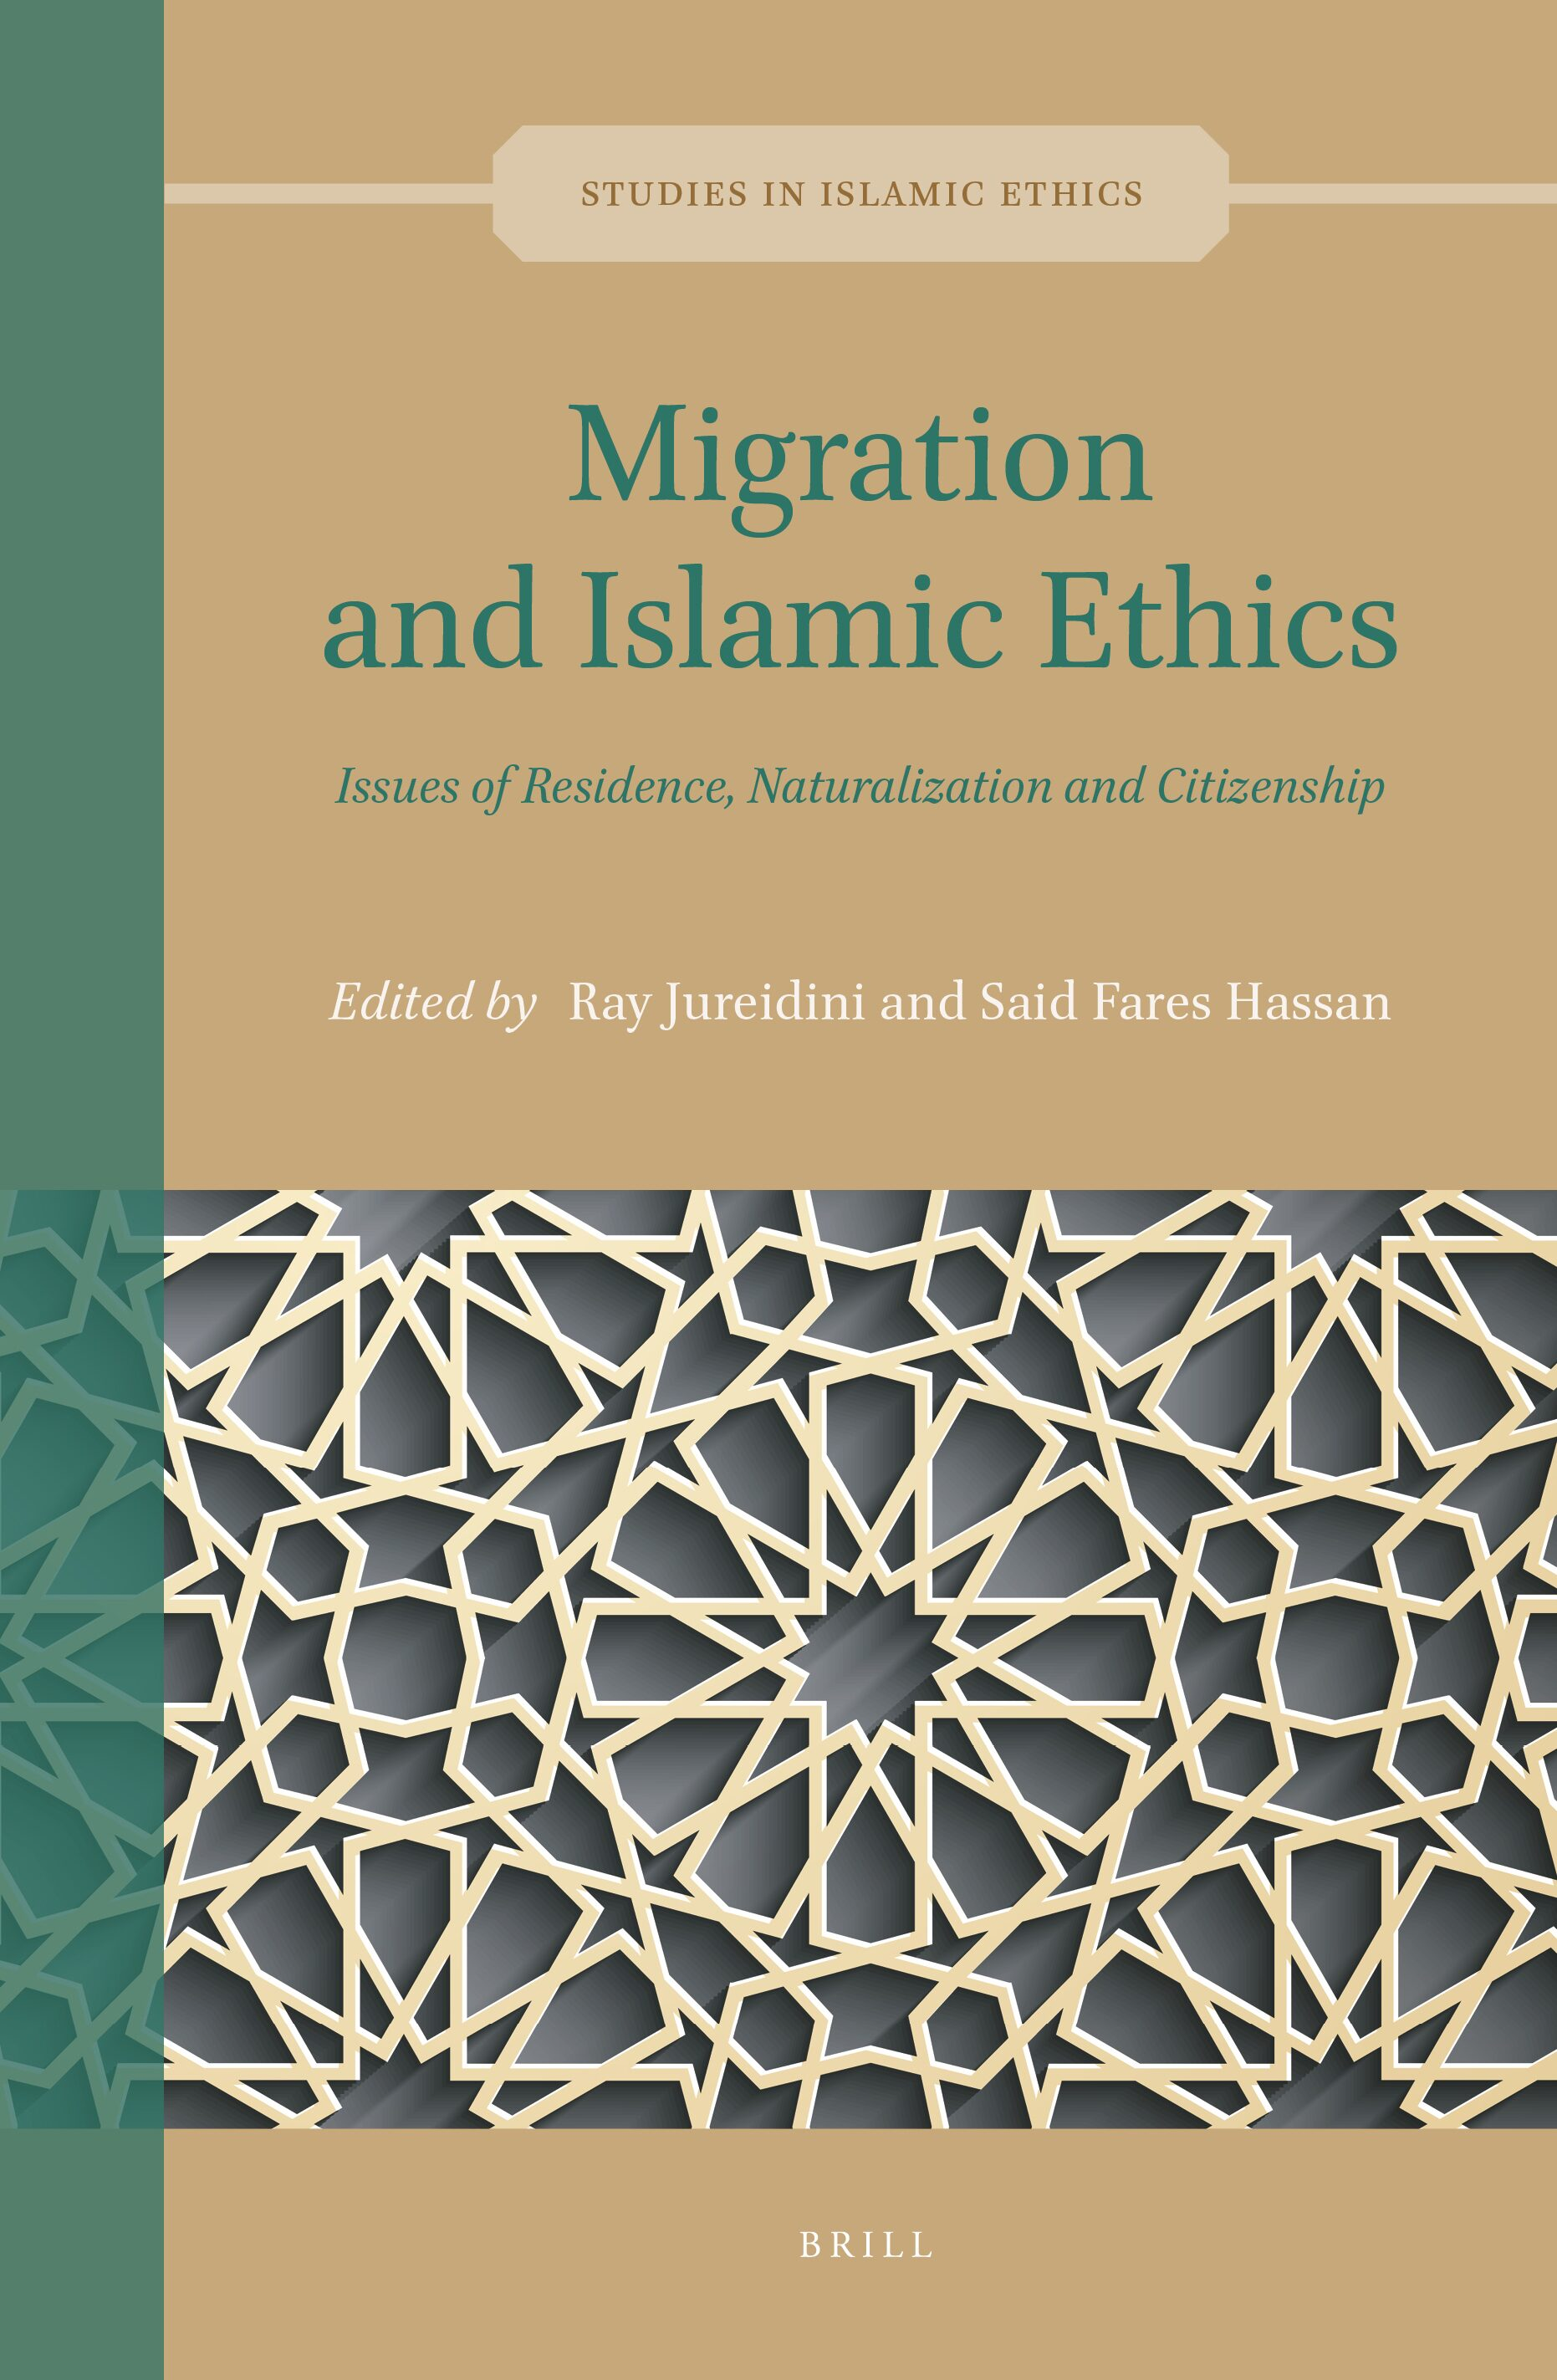 Migration and Islamic Ethics Cover